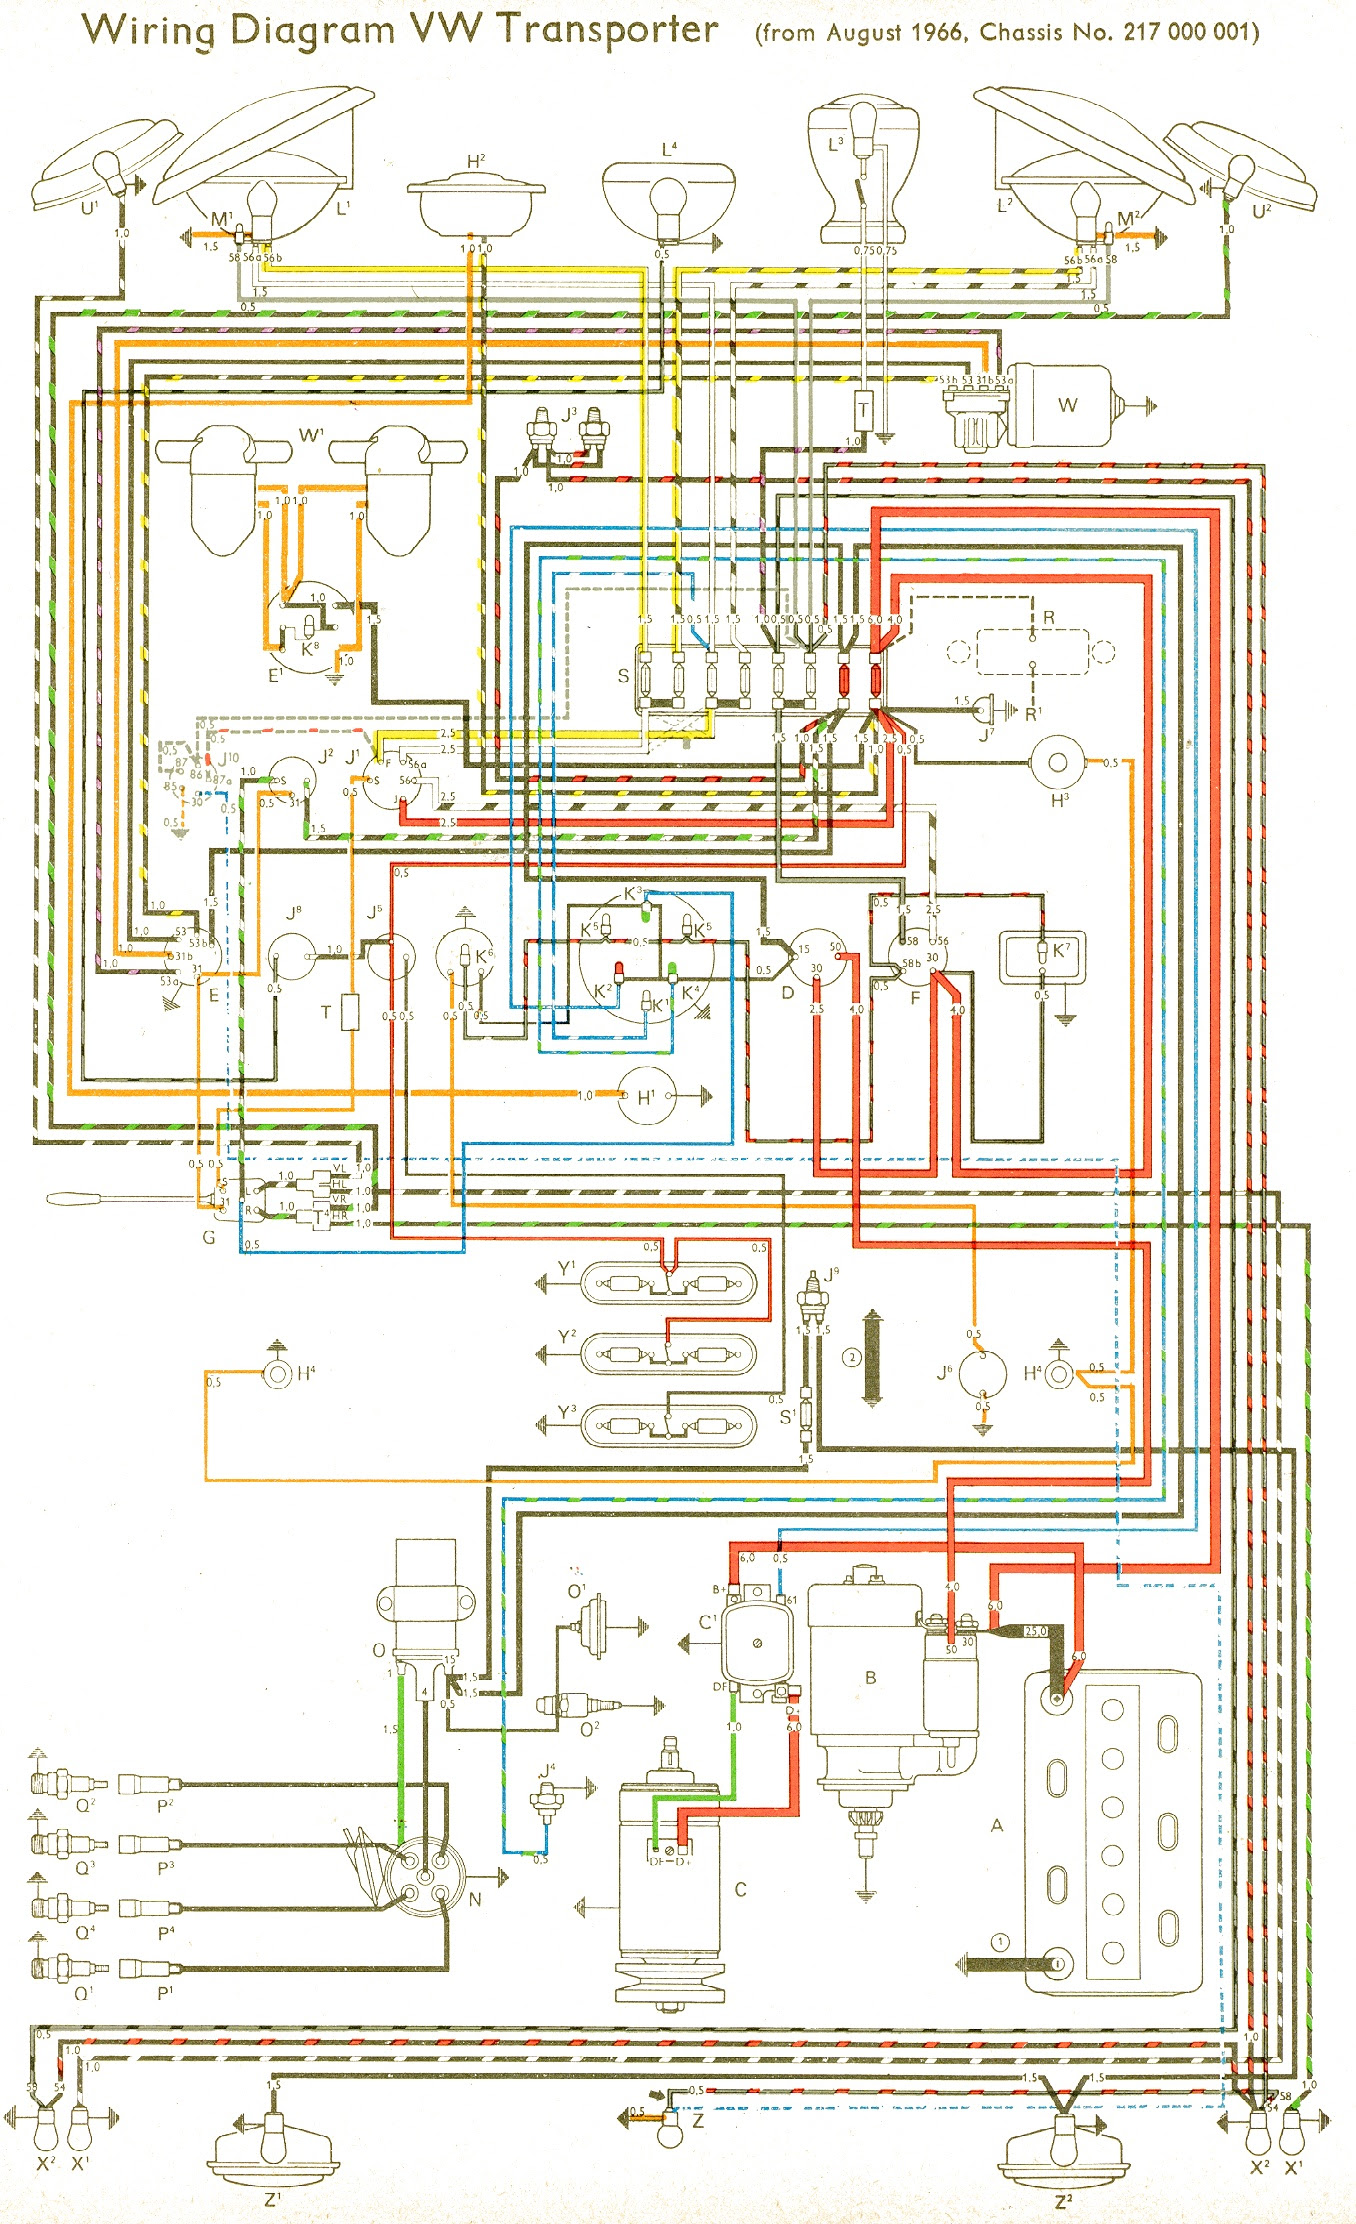 Eagle Bus Wiring Diagram Led Schematic Diagram Begeboy Wiring Diagram Source